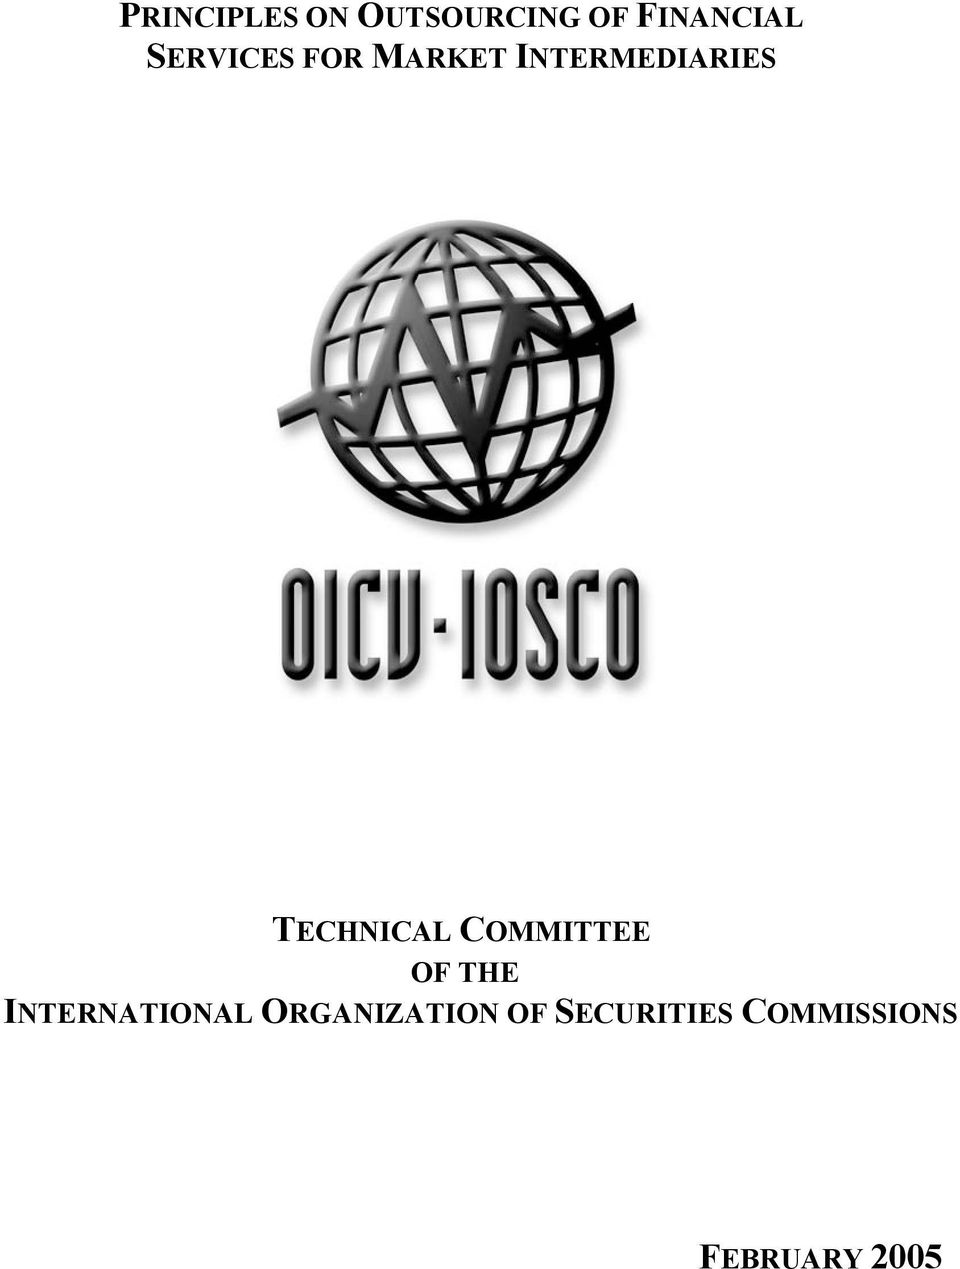 TECHNICAL COMMITTEE OF THE INTERNATIONAL